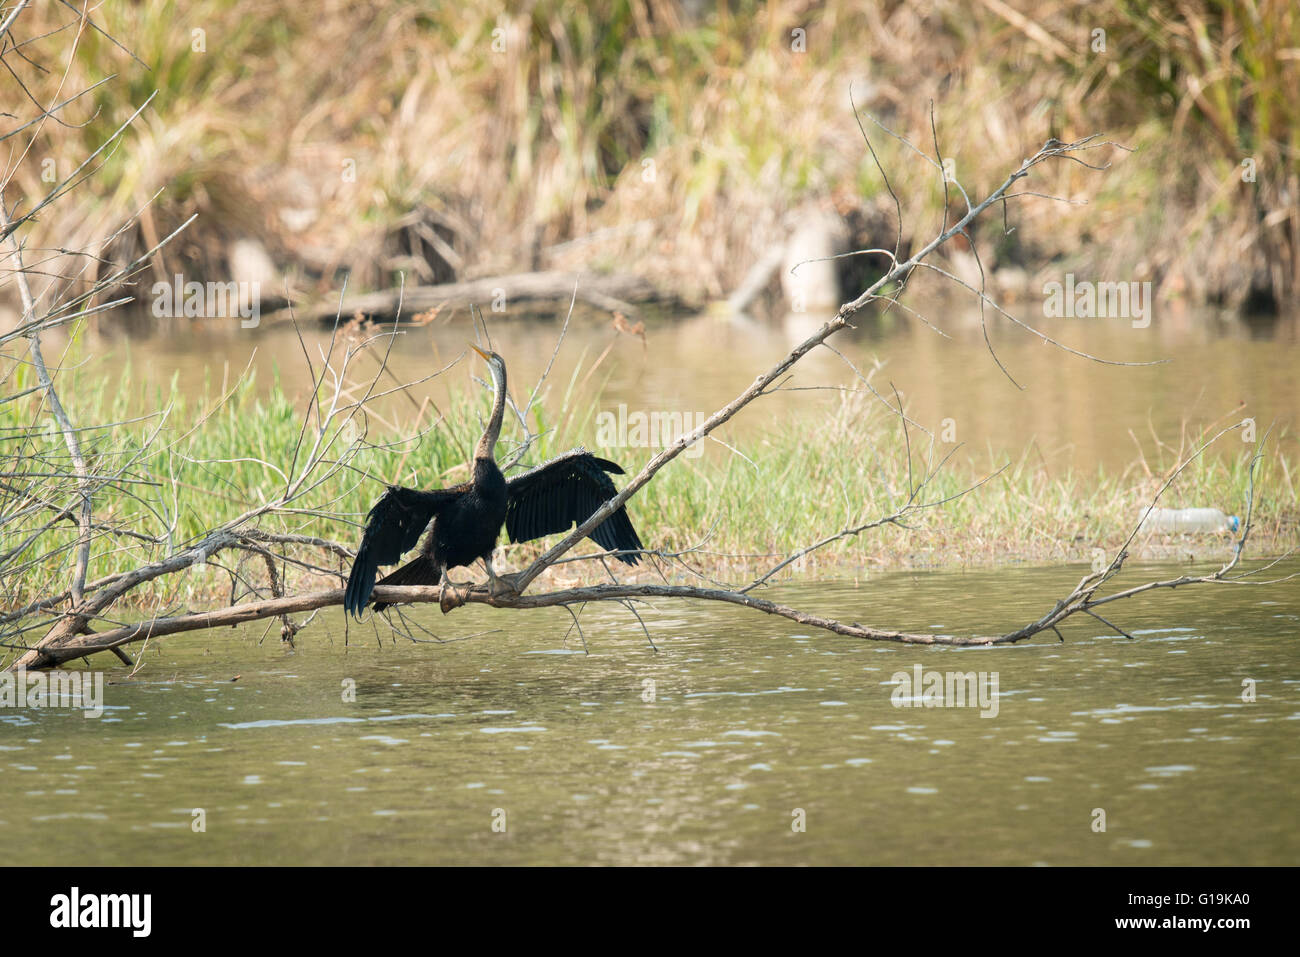 The Oriental darter or Indian darter (Anhinga melanogaster) is a water bird of tropical South Asia and Southeast - Stock Image